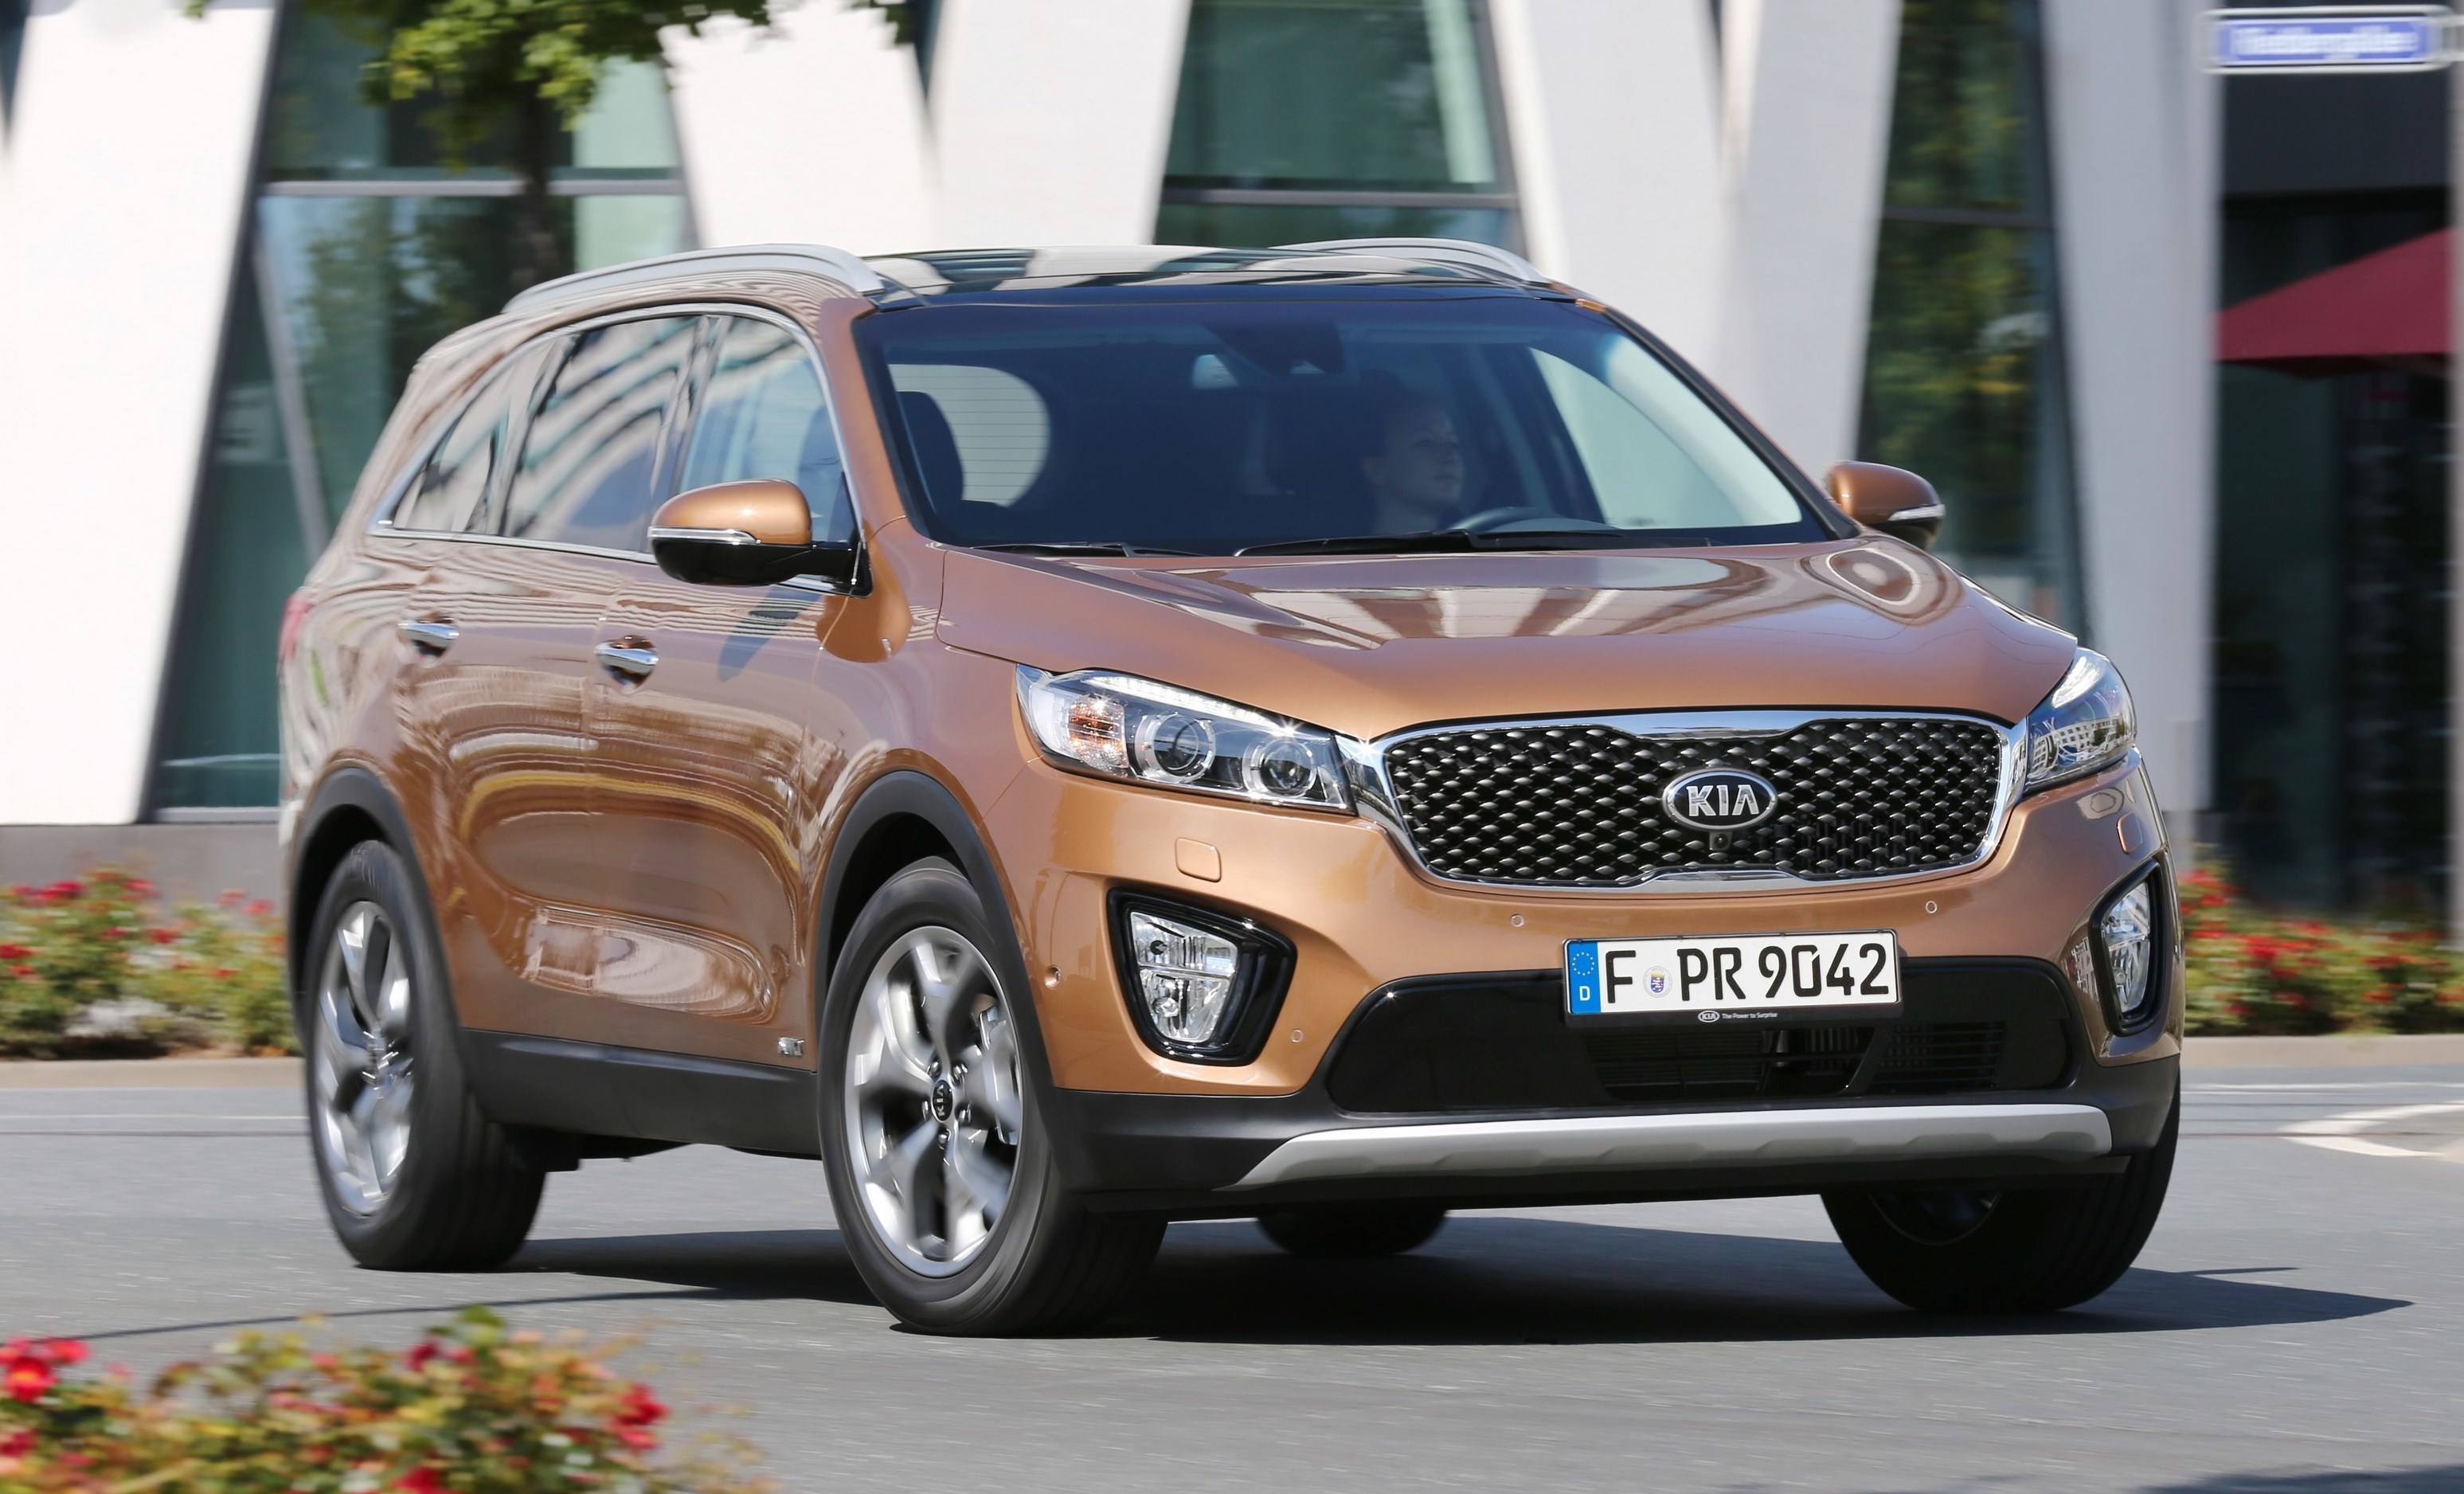 kia price ford at with style sxl paris sorento debuts in jaguar prices baiting